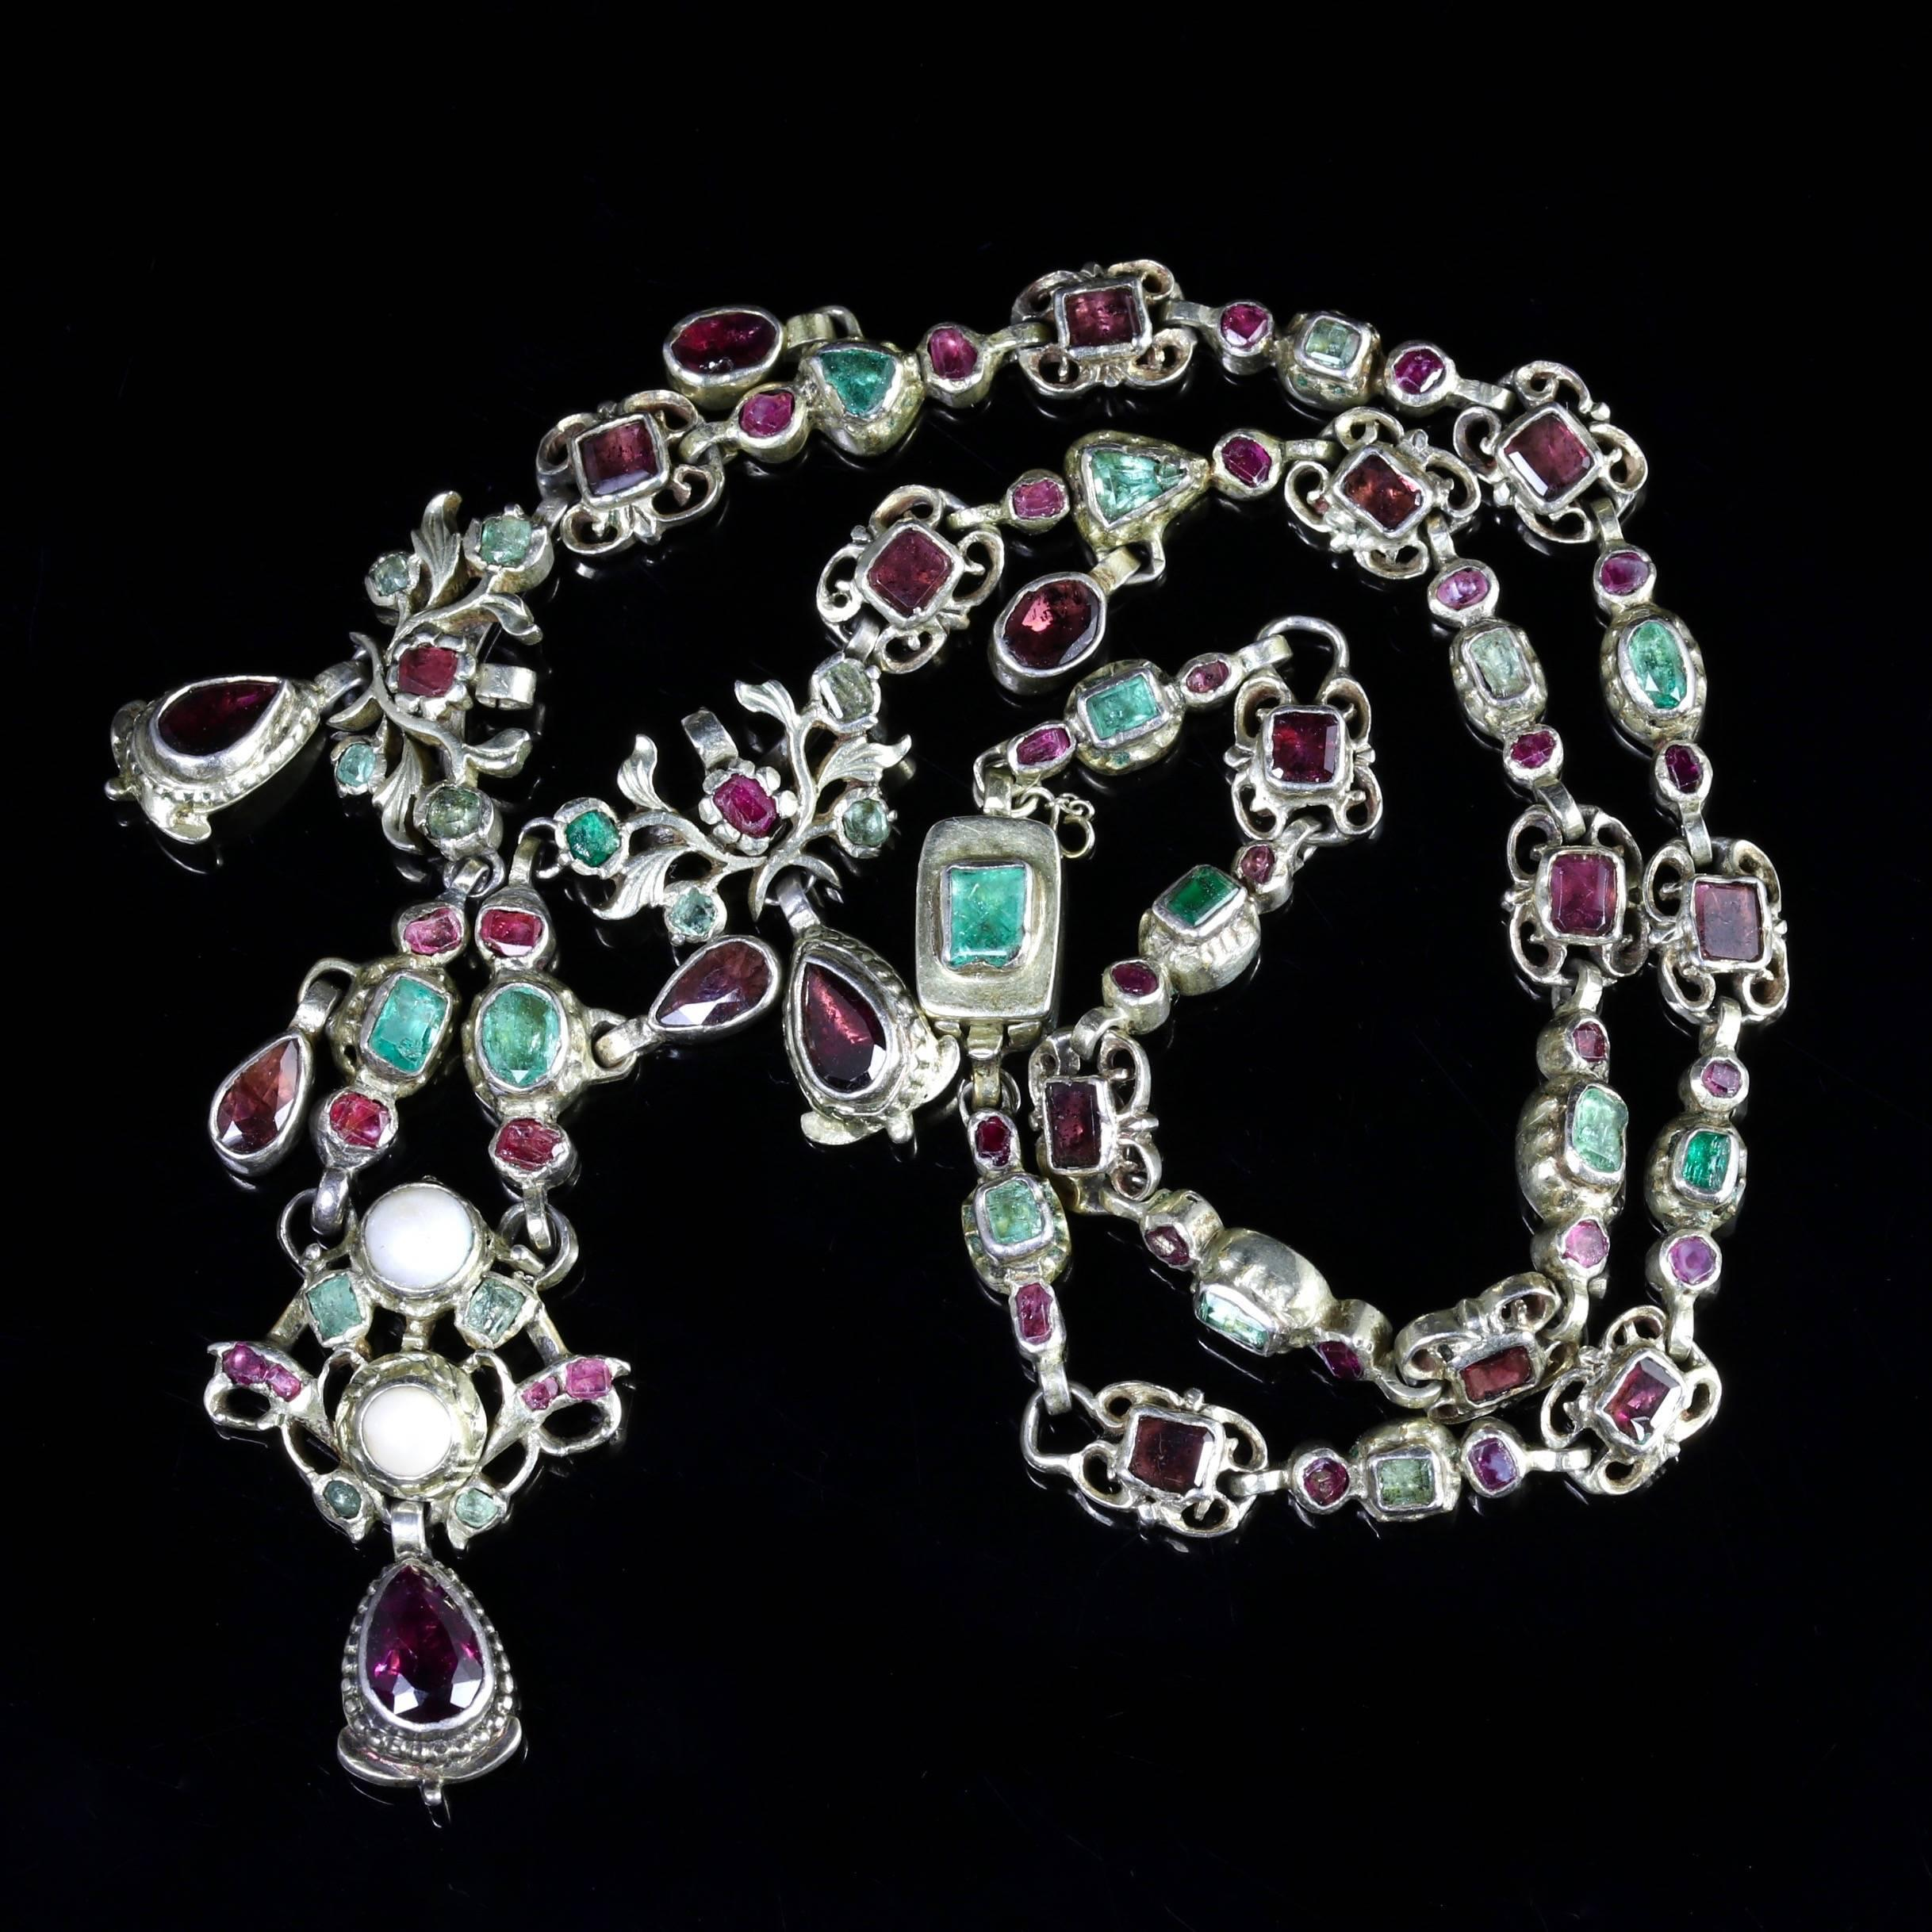 circa georgian renaissance jewelry at id garnet emerald necklace master j necklaces chain ruby drop